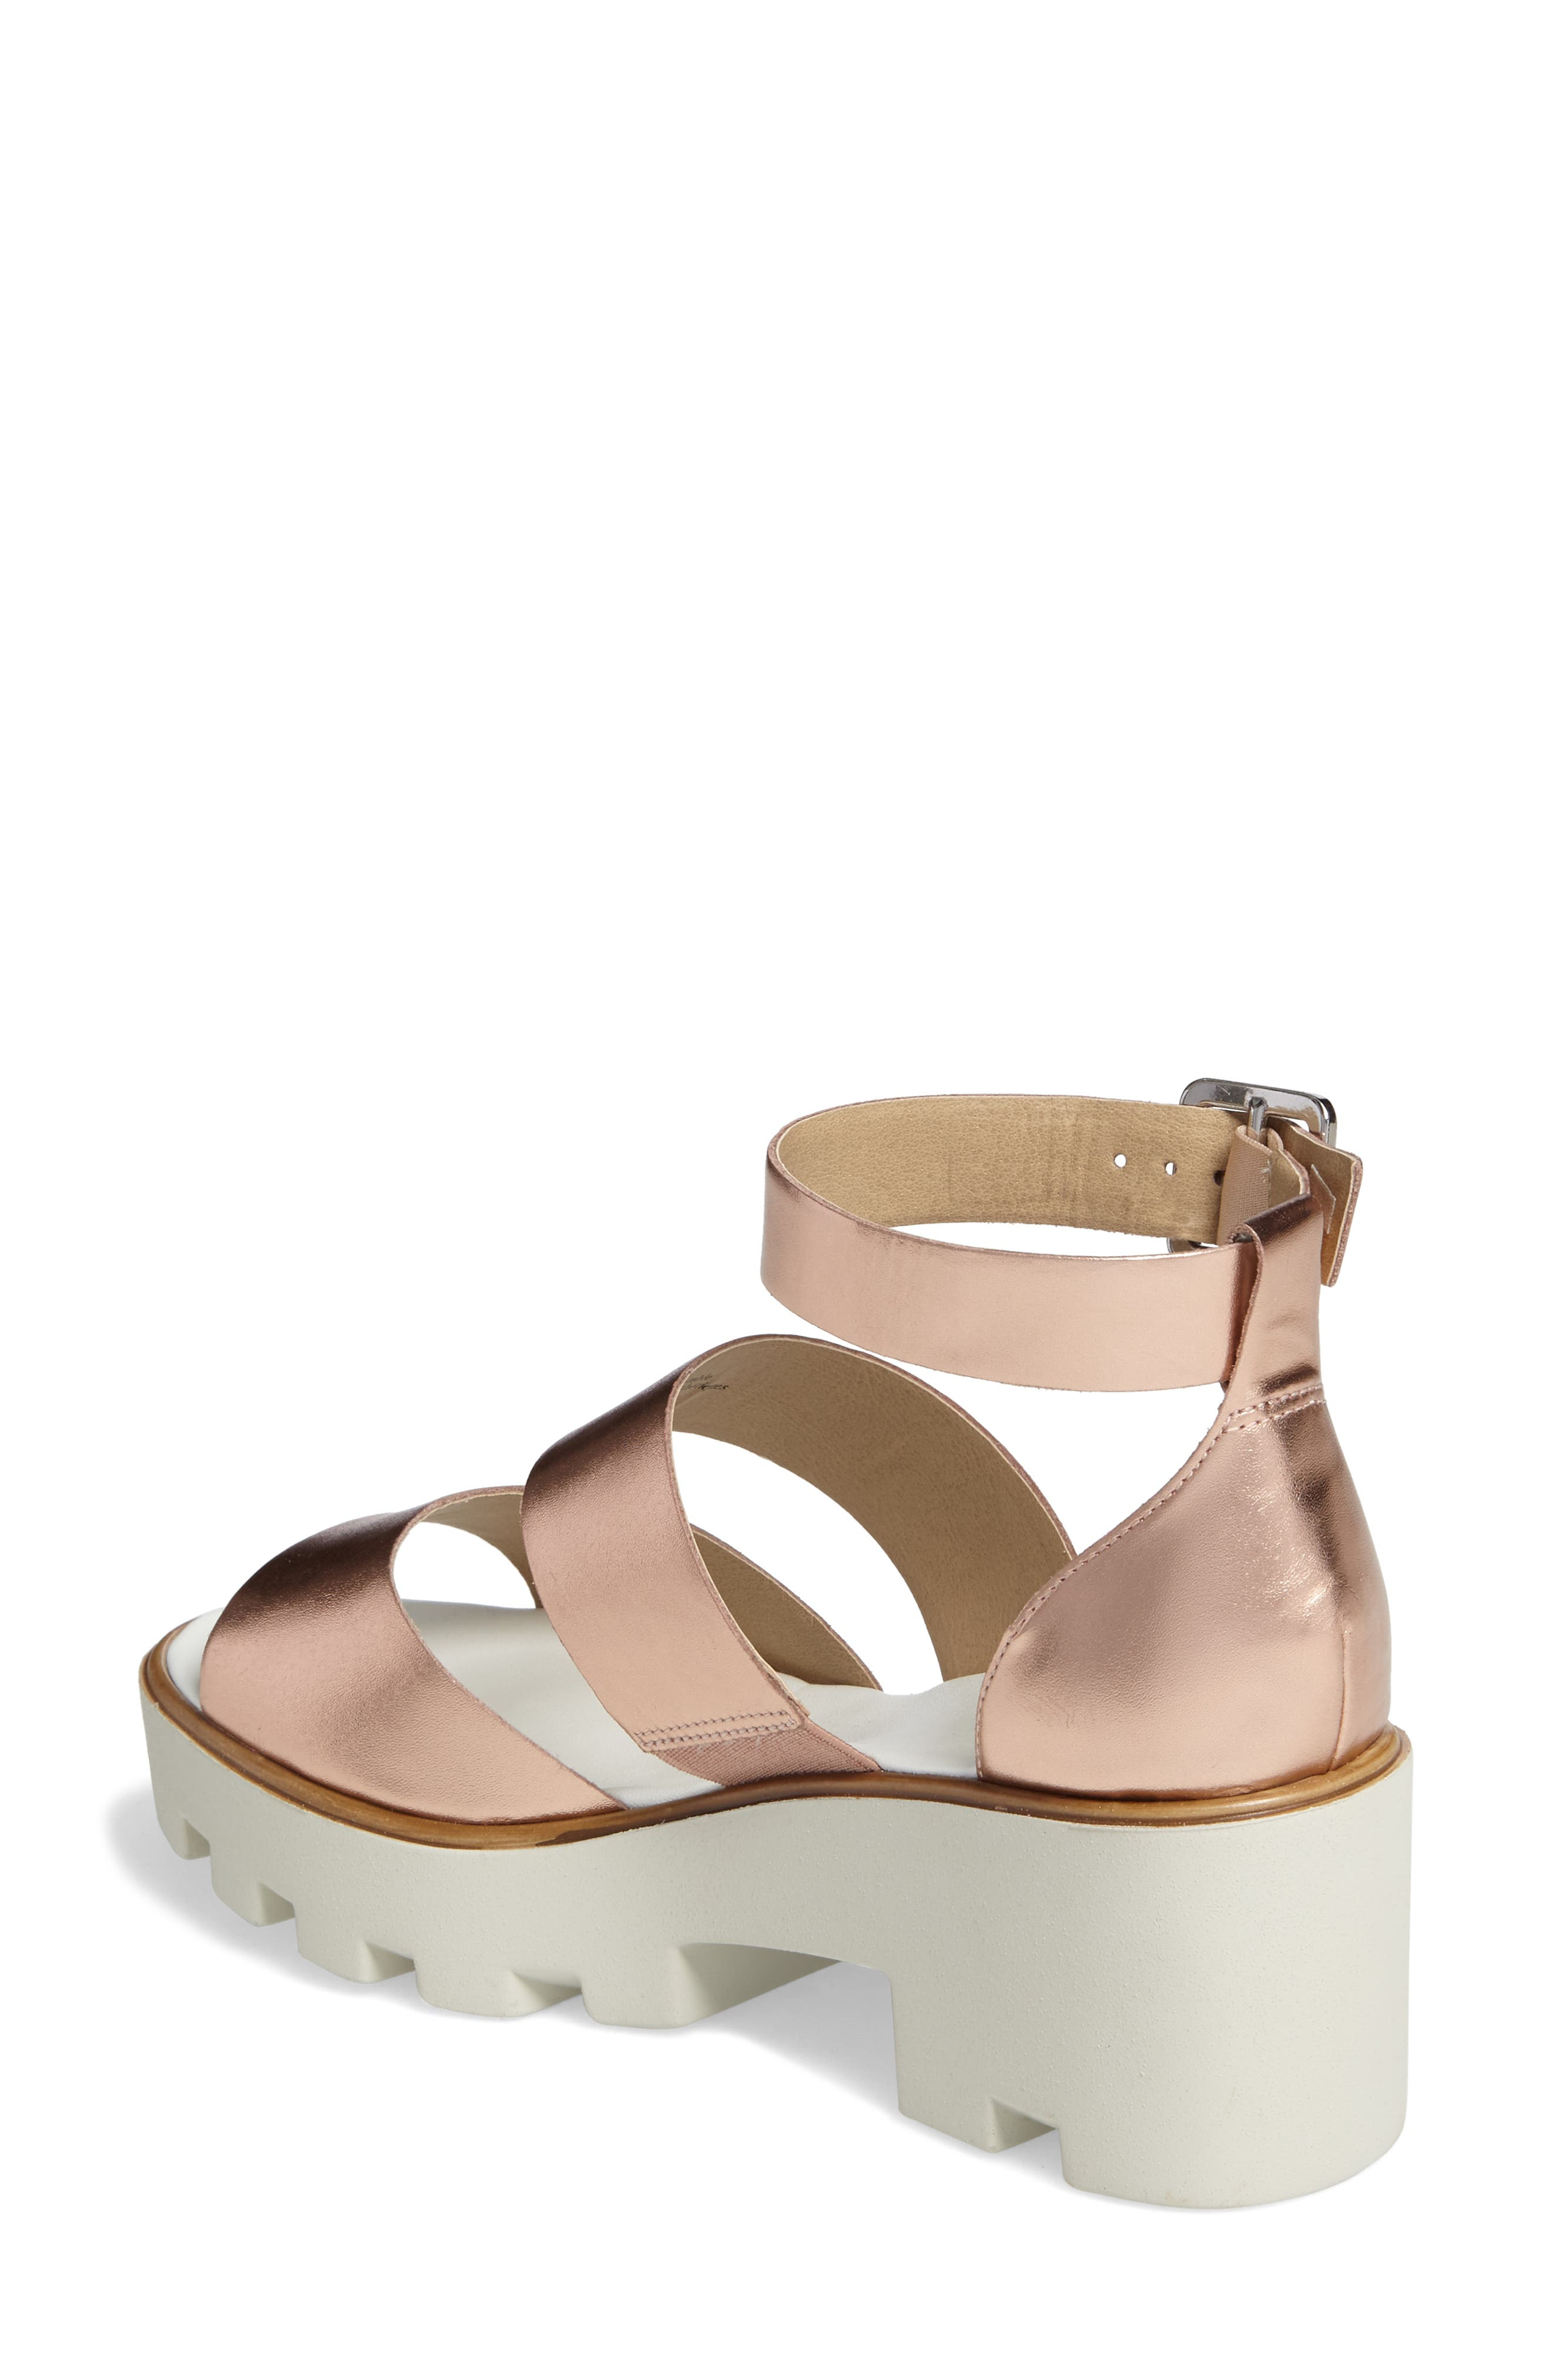 Alternate Image 2  - BP. Rowan Platform Sandal (Women)